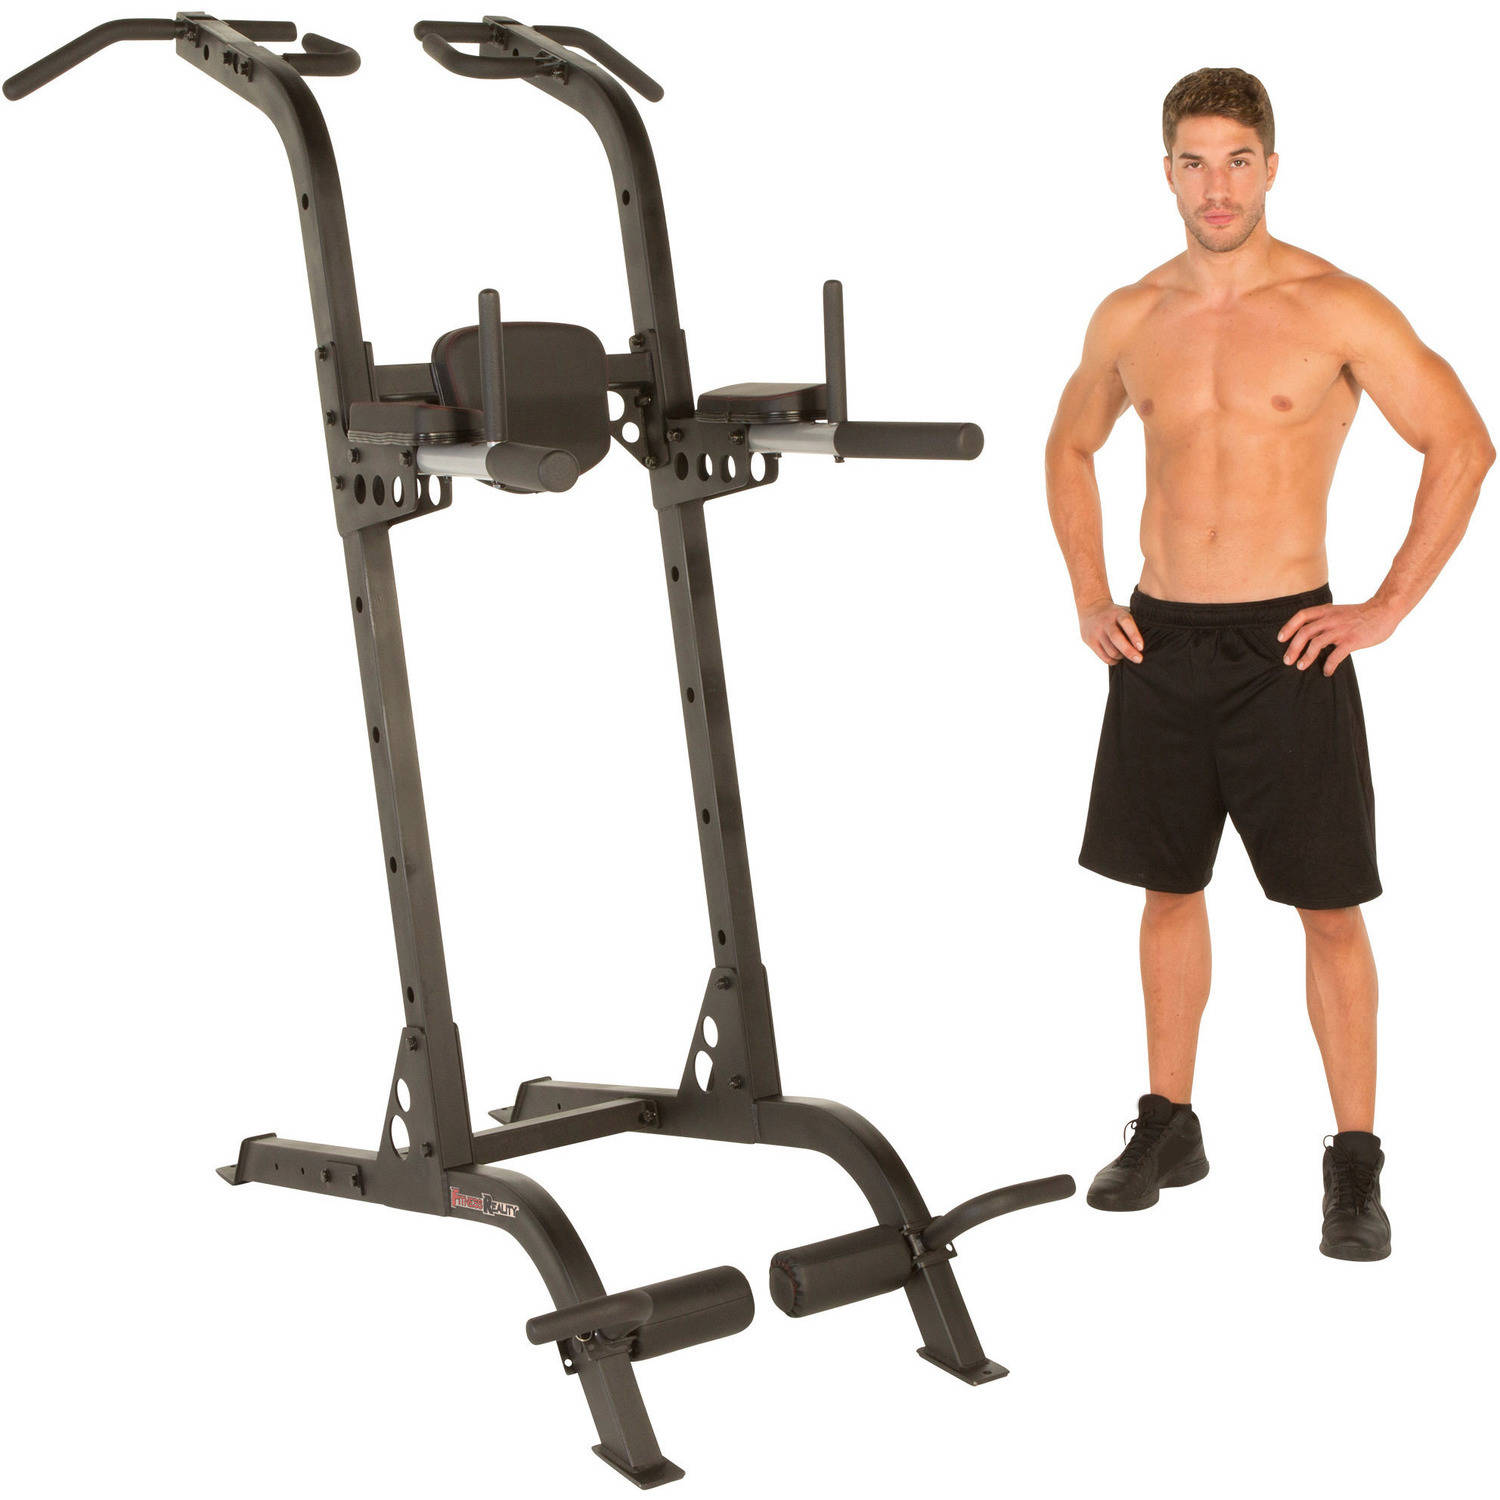 FITNESS REALITY X-Class Multi-Function Power Tower